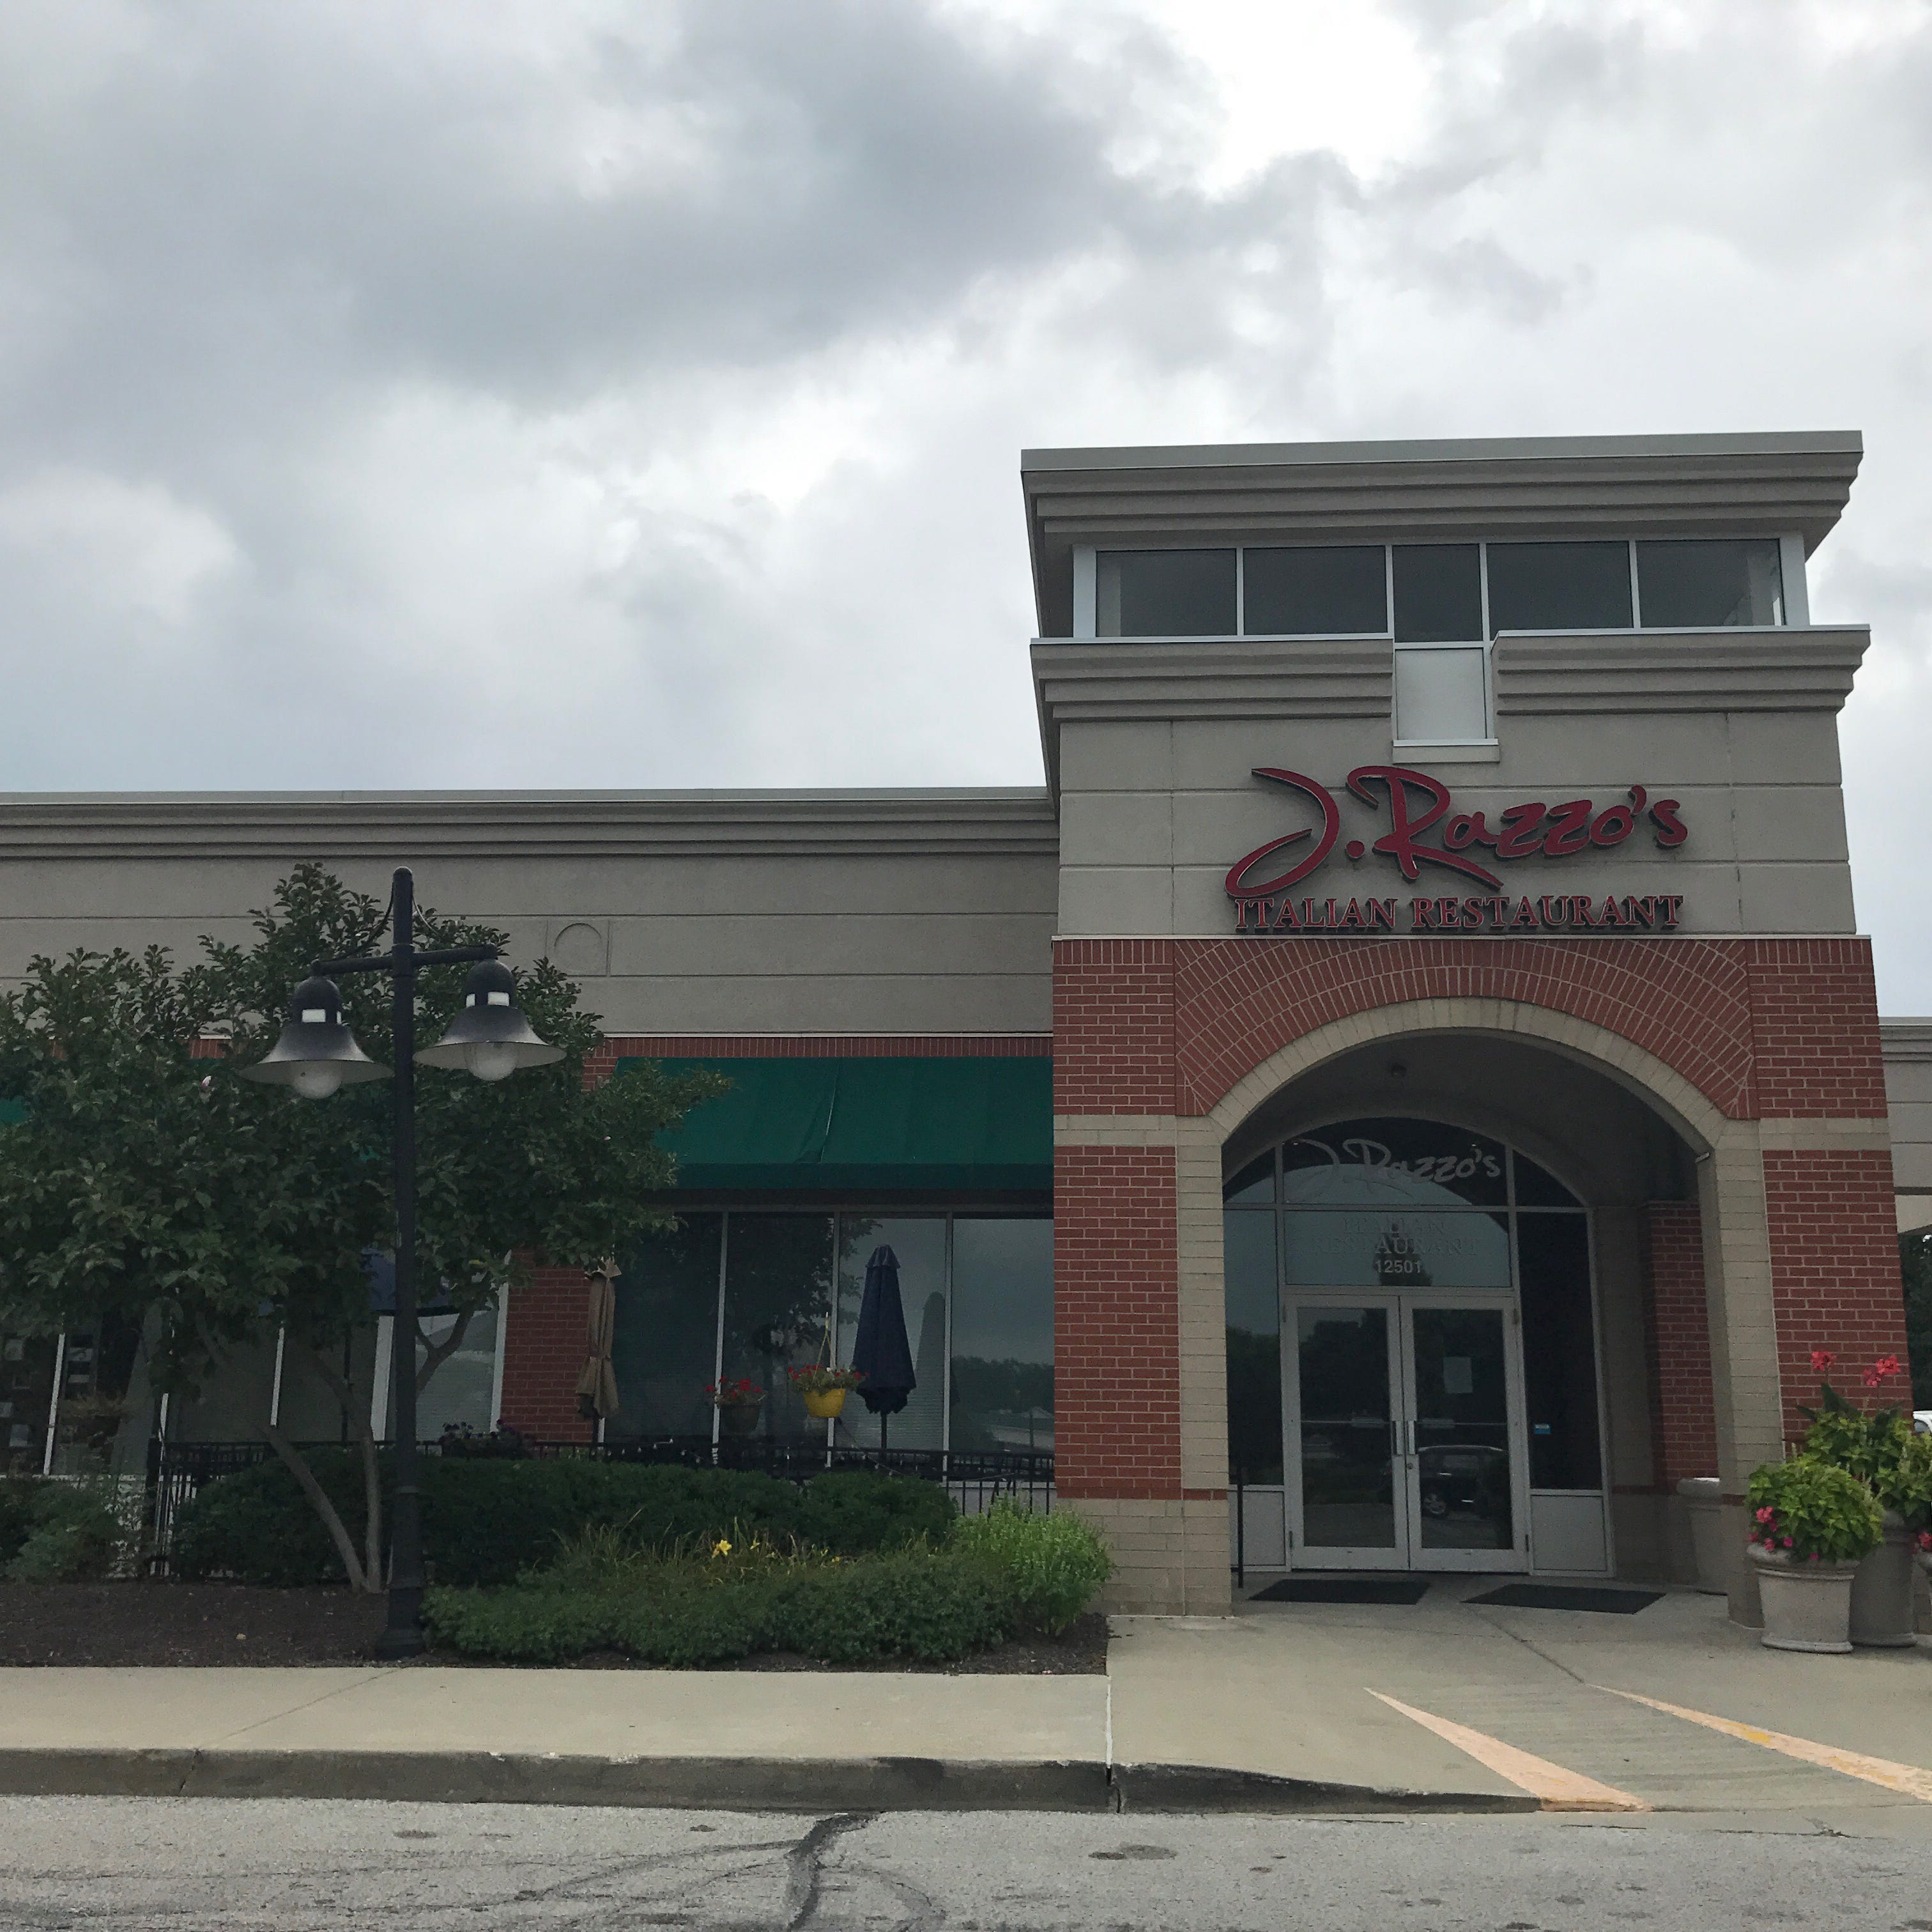 US 31 construction blamed as J. Razzo's Italian Restaurant in Carmel set to close